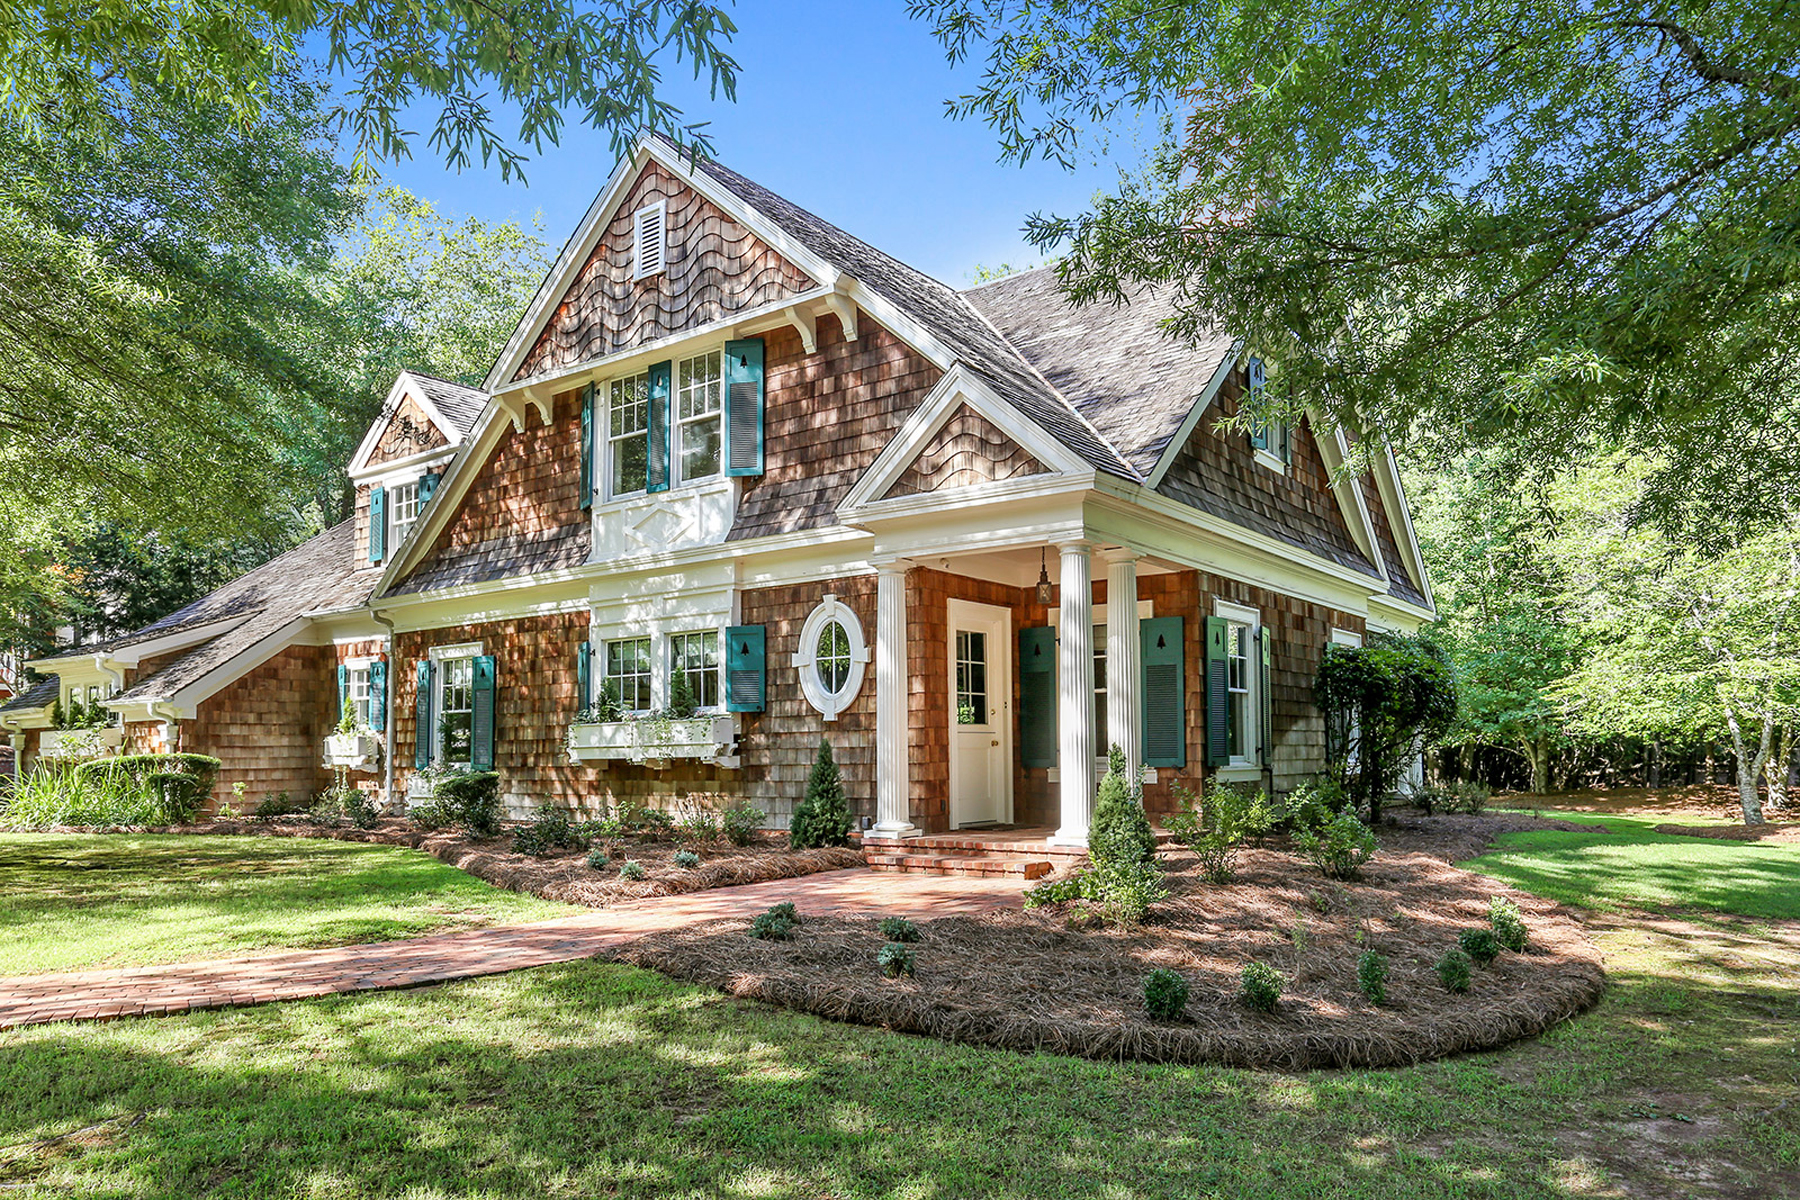 Single Family Home for Sale at Life Magazine Home 4050 Palisades Main NW Kennesaw, Georgia, 30144 United States